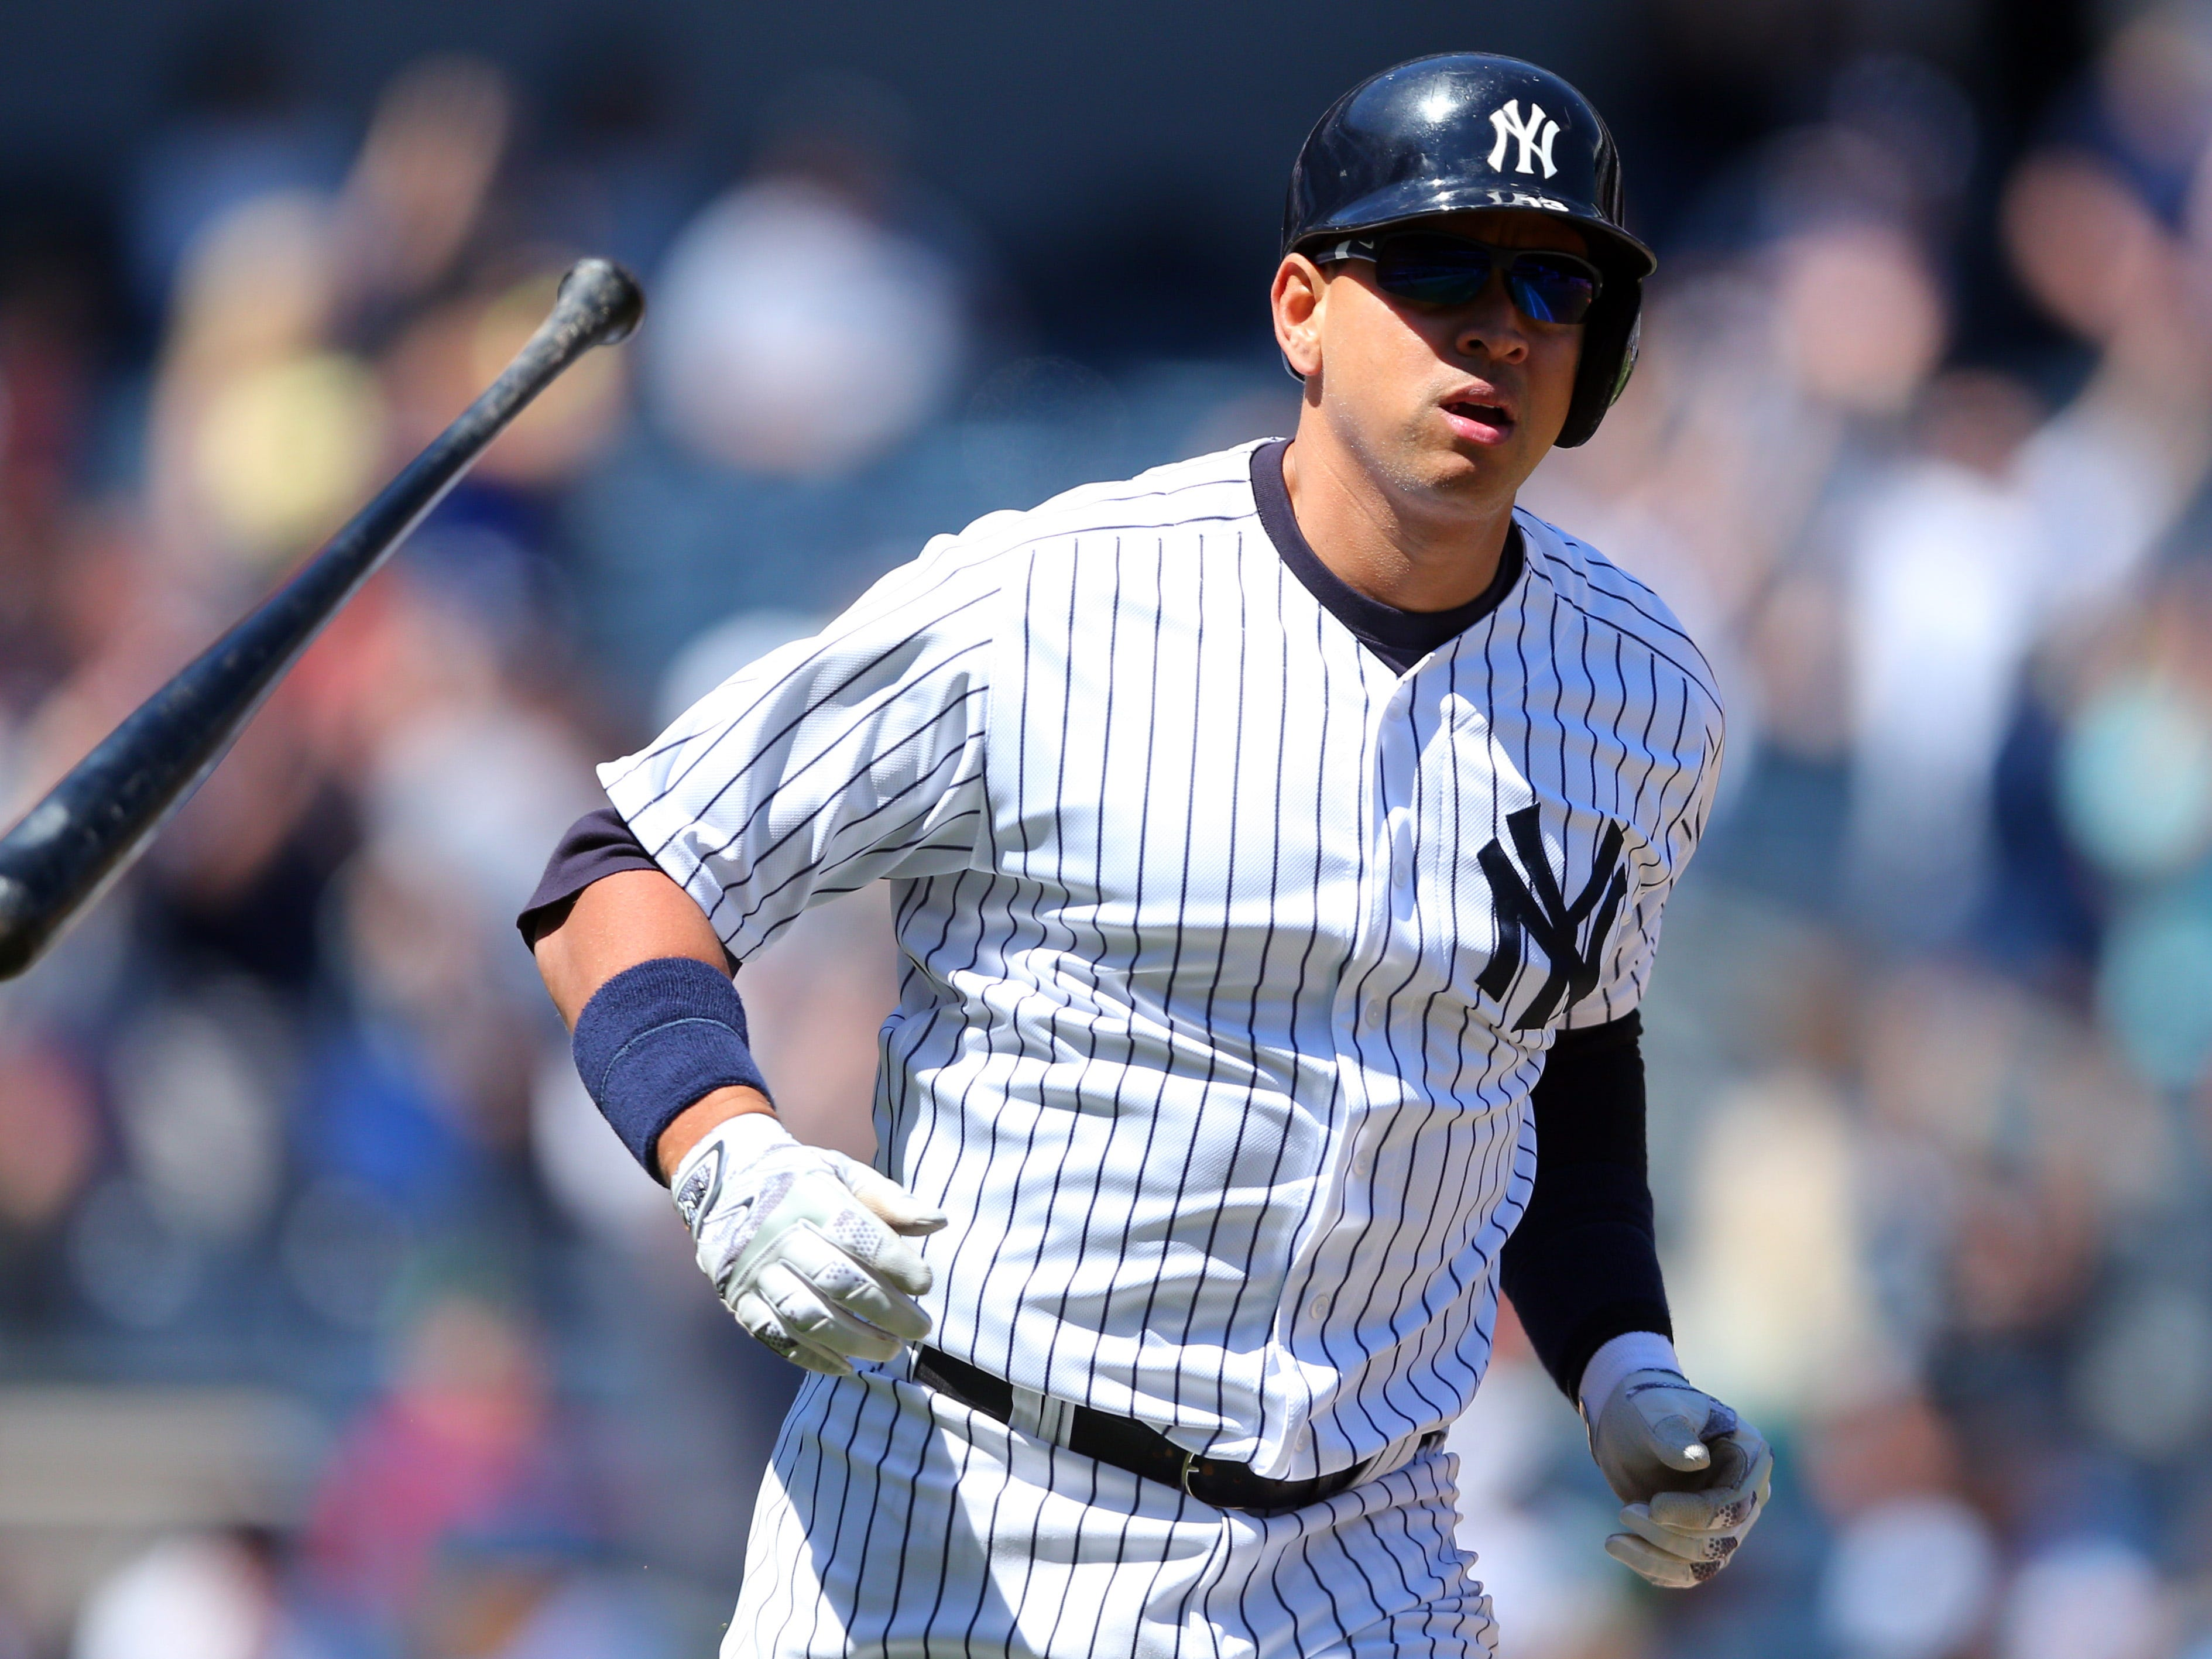 $275 million: Alex Rodriguez, Yankees (2008-2017)